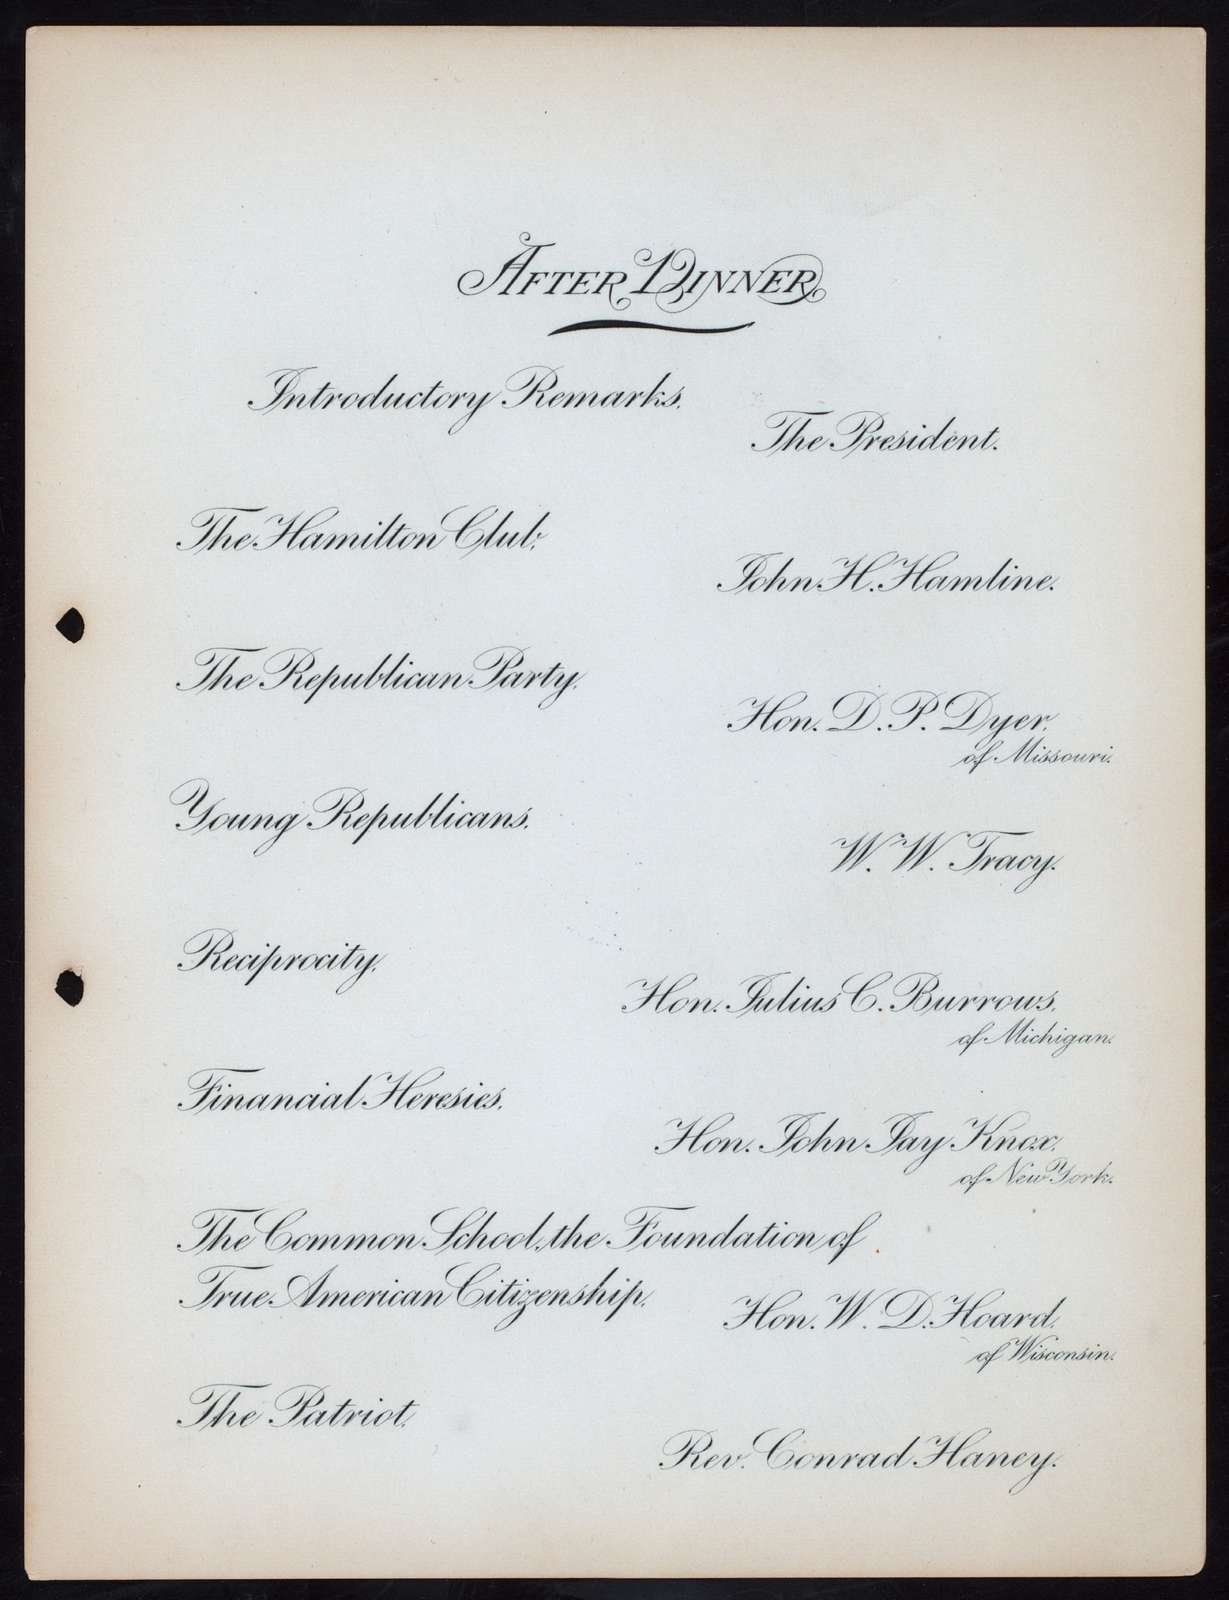 FIRST ANNUAL BANQUET [held by] HAMILTON CLUB [at] THE AUDITORIUM CHICAGO IL (CLUBHOUSE)